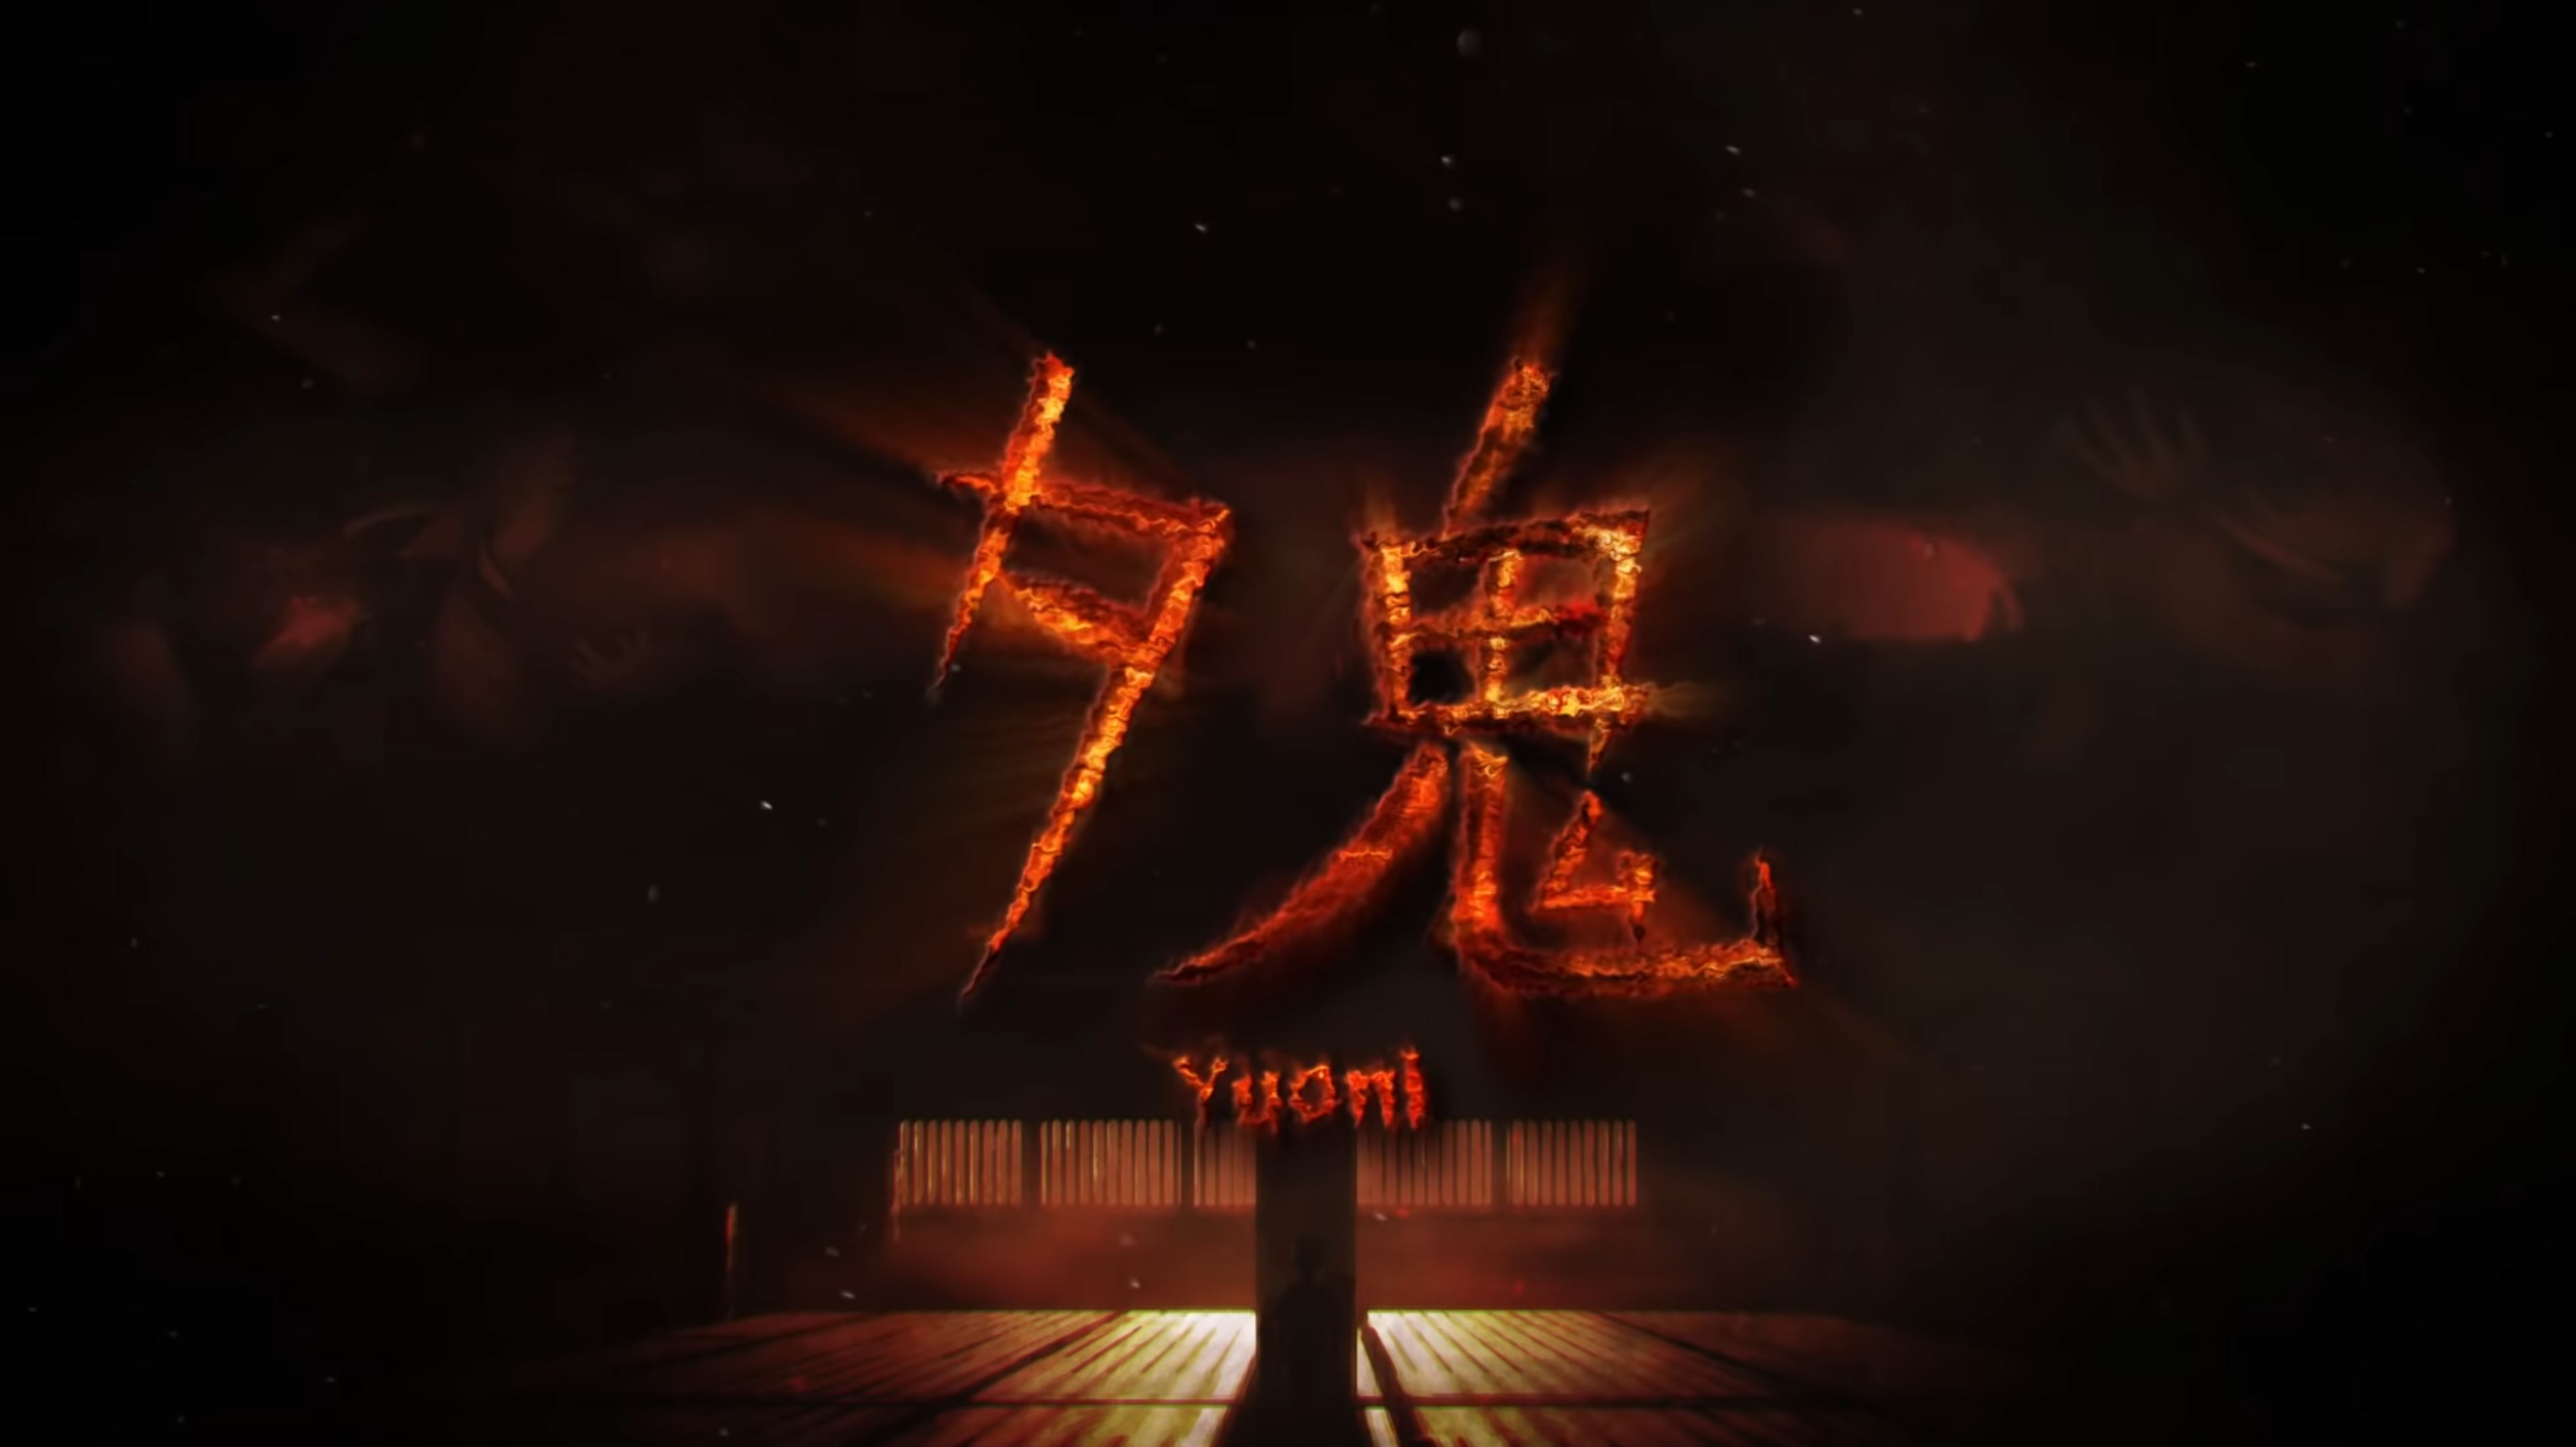 yuoni-ps5-ps4-news-reviews-videos